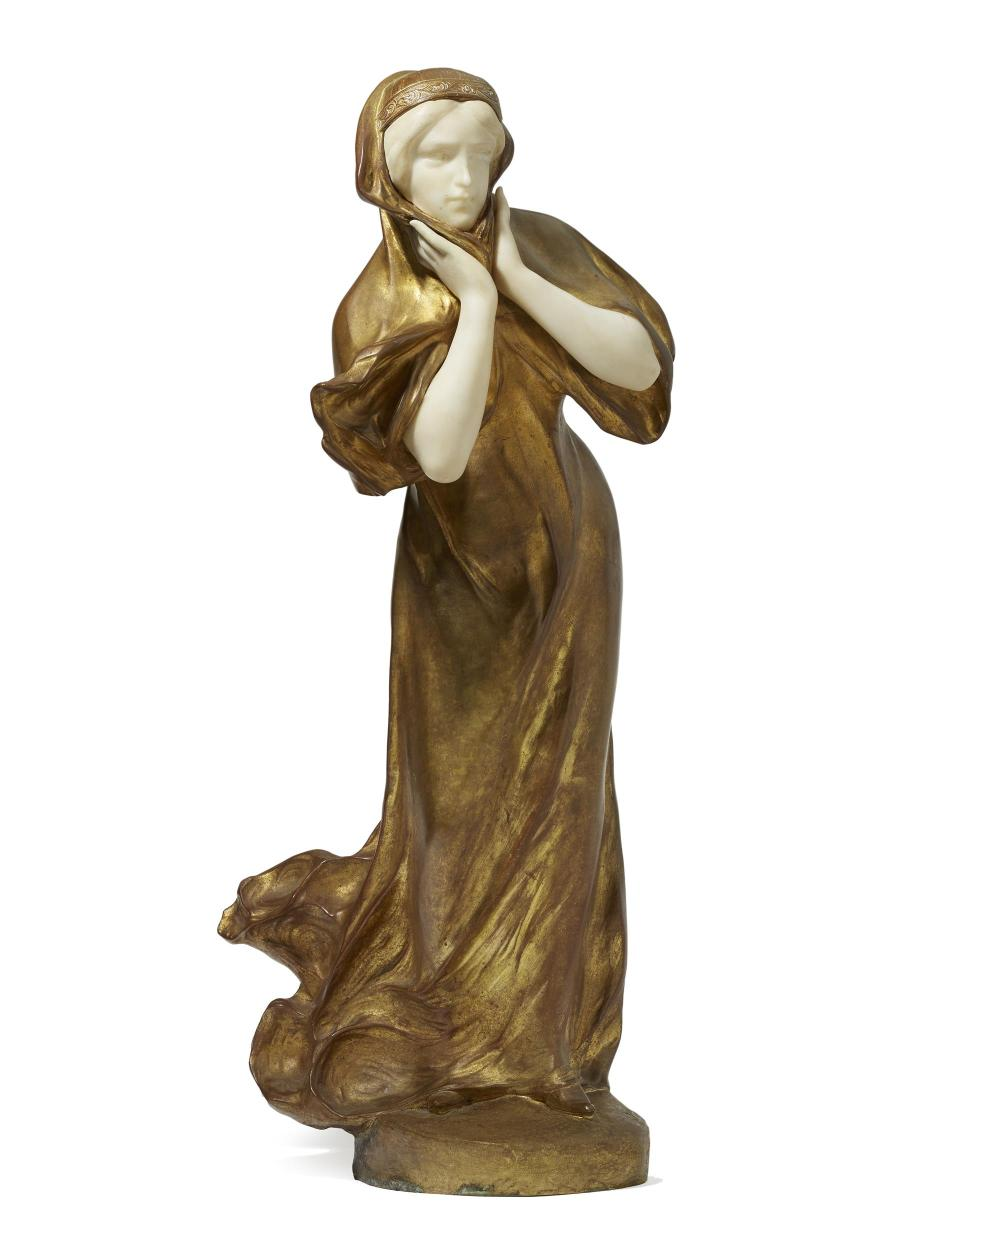 Affortunato (Fortunato) Gory, (1895-1925 Italian/French), Walking woman, Gilt-bronze and alabaster, 26